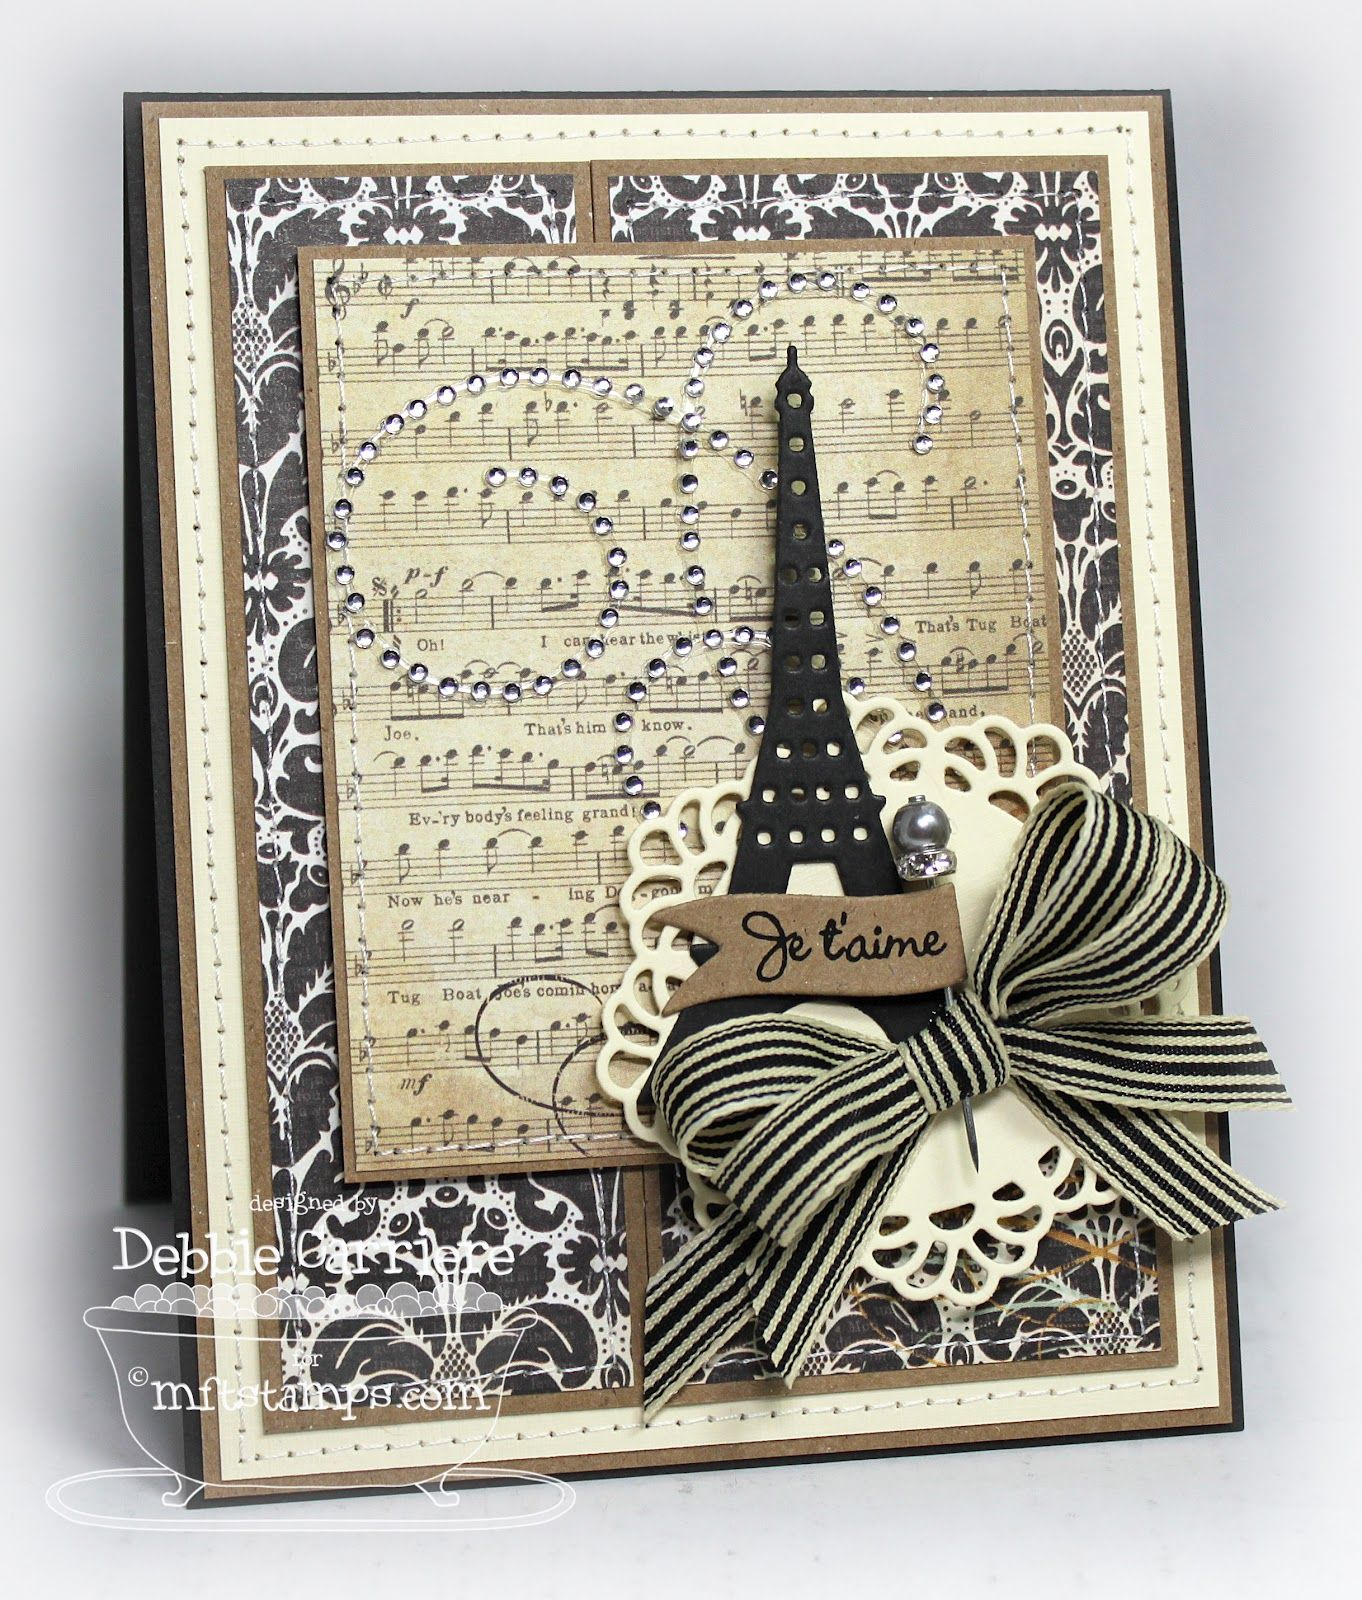 Vintage style scrapbook ideas - Mft Eiffel Tower Browns And Creams Vintage Style Card For My Handmade Greeting Cards